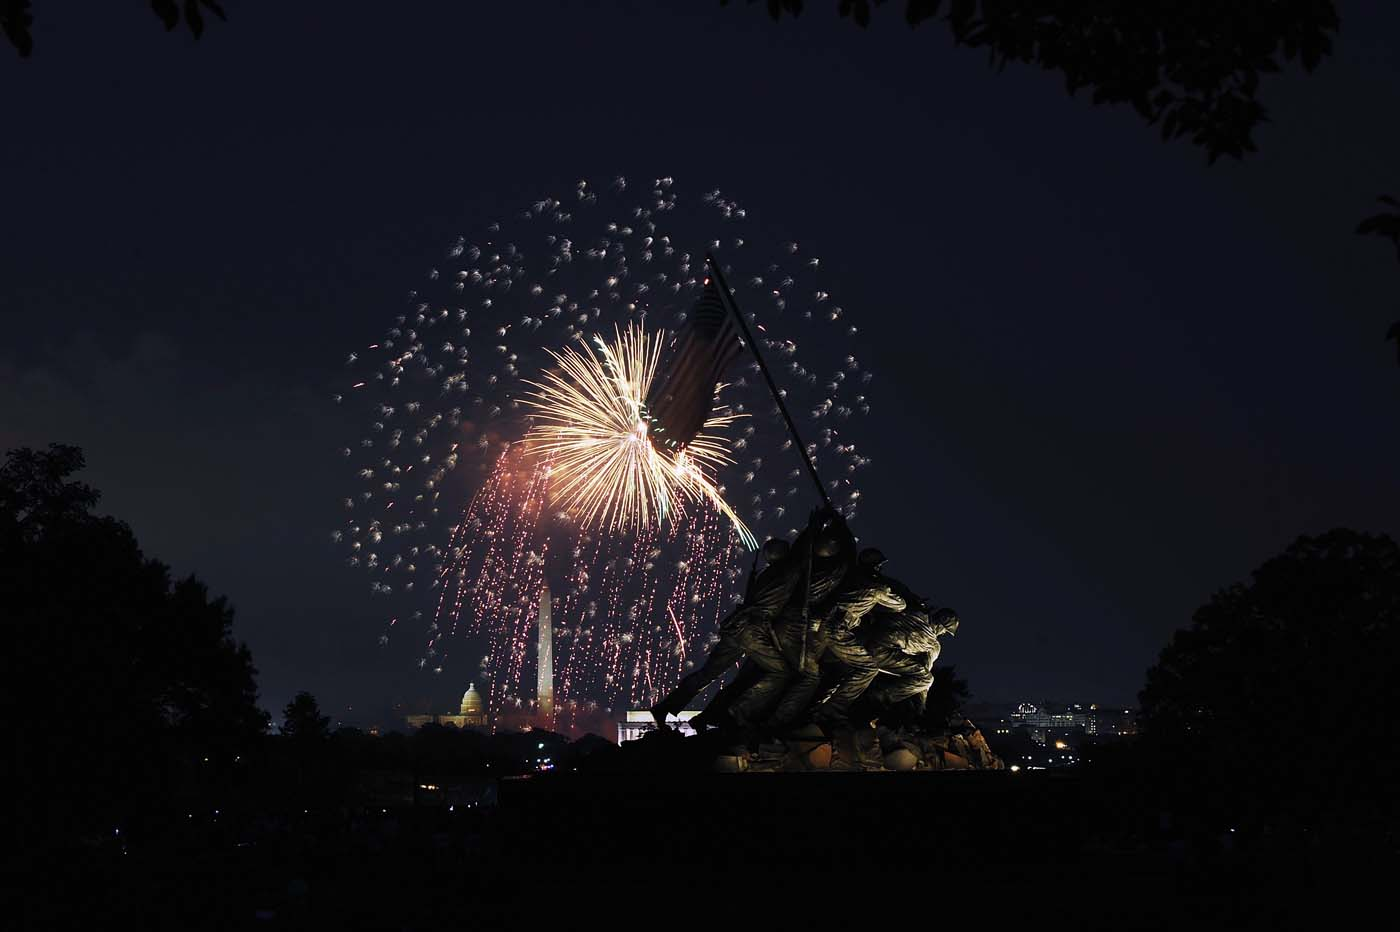 ARLINGTON, VA - JULY 04: An Independence Day fireworks display lights up the sky over Washington, as seen from the U.S. Marine Corps Memorial in Arlington, Virginia. (Jonathan Ernst/Reuters)